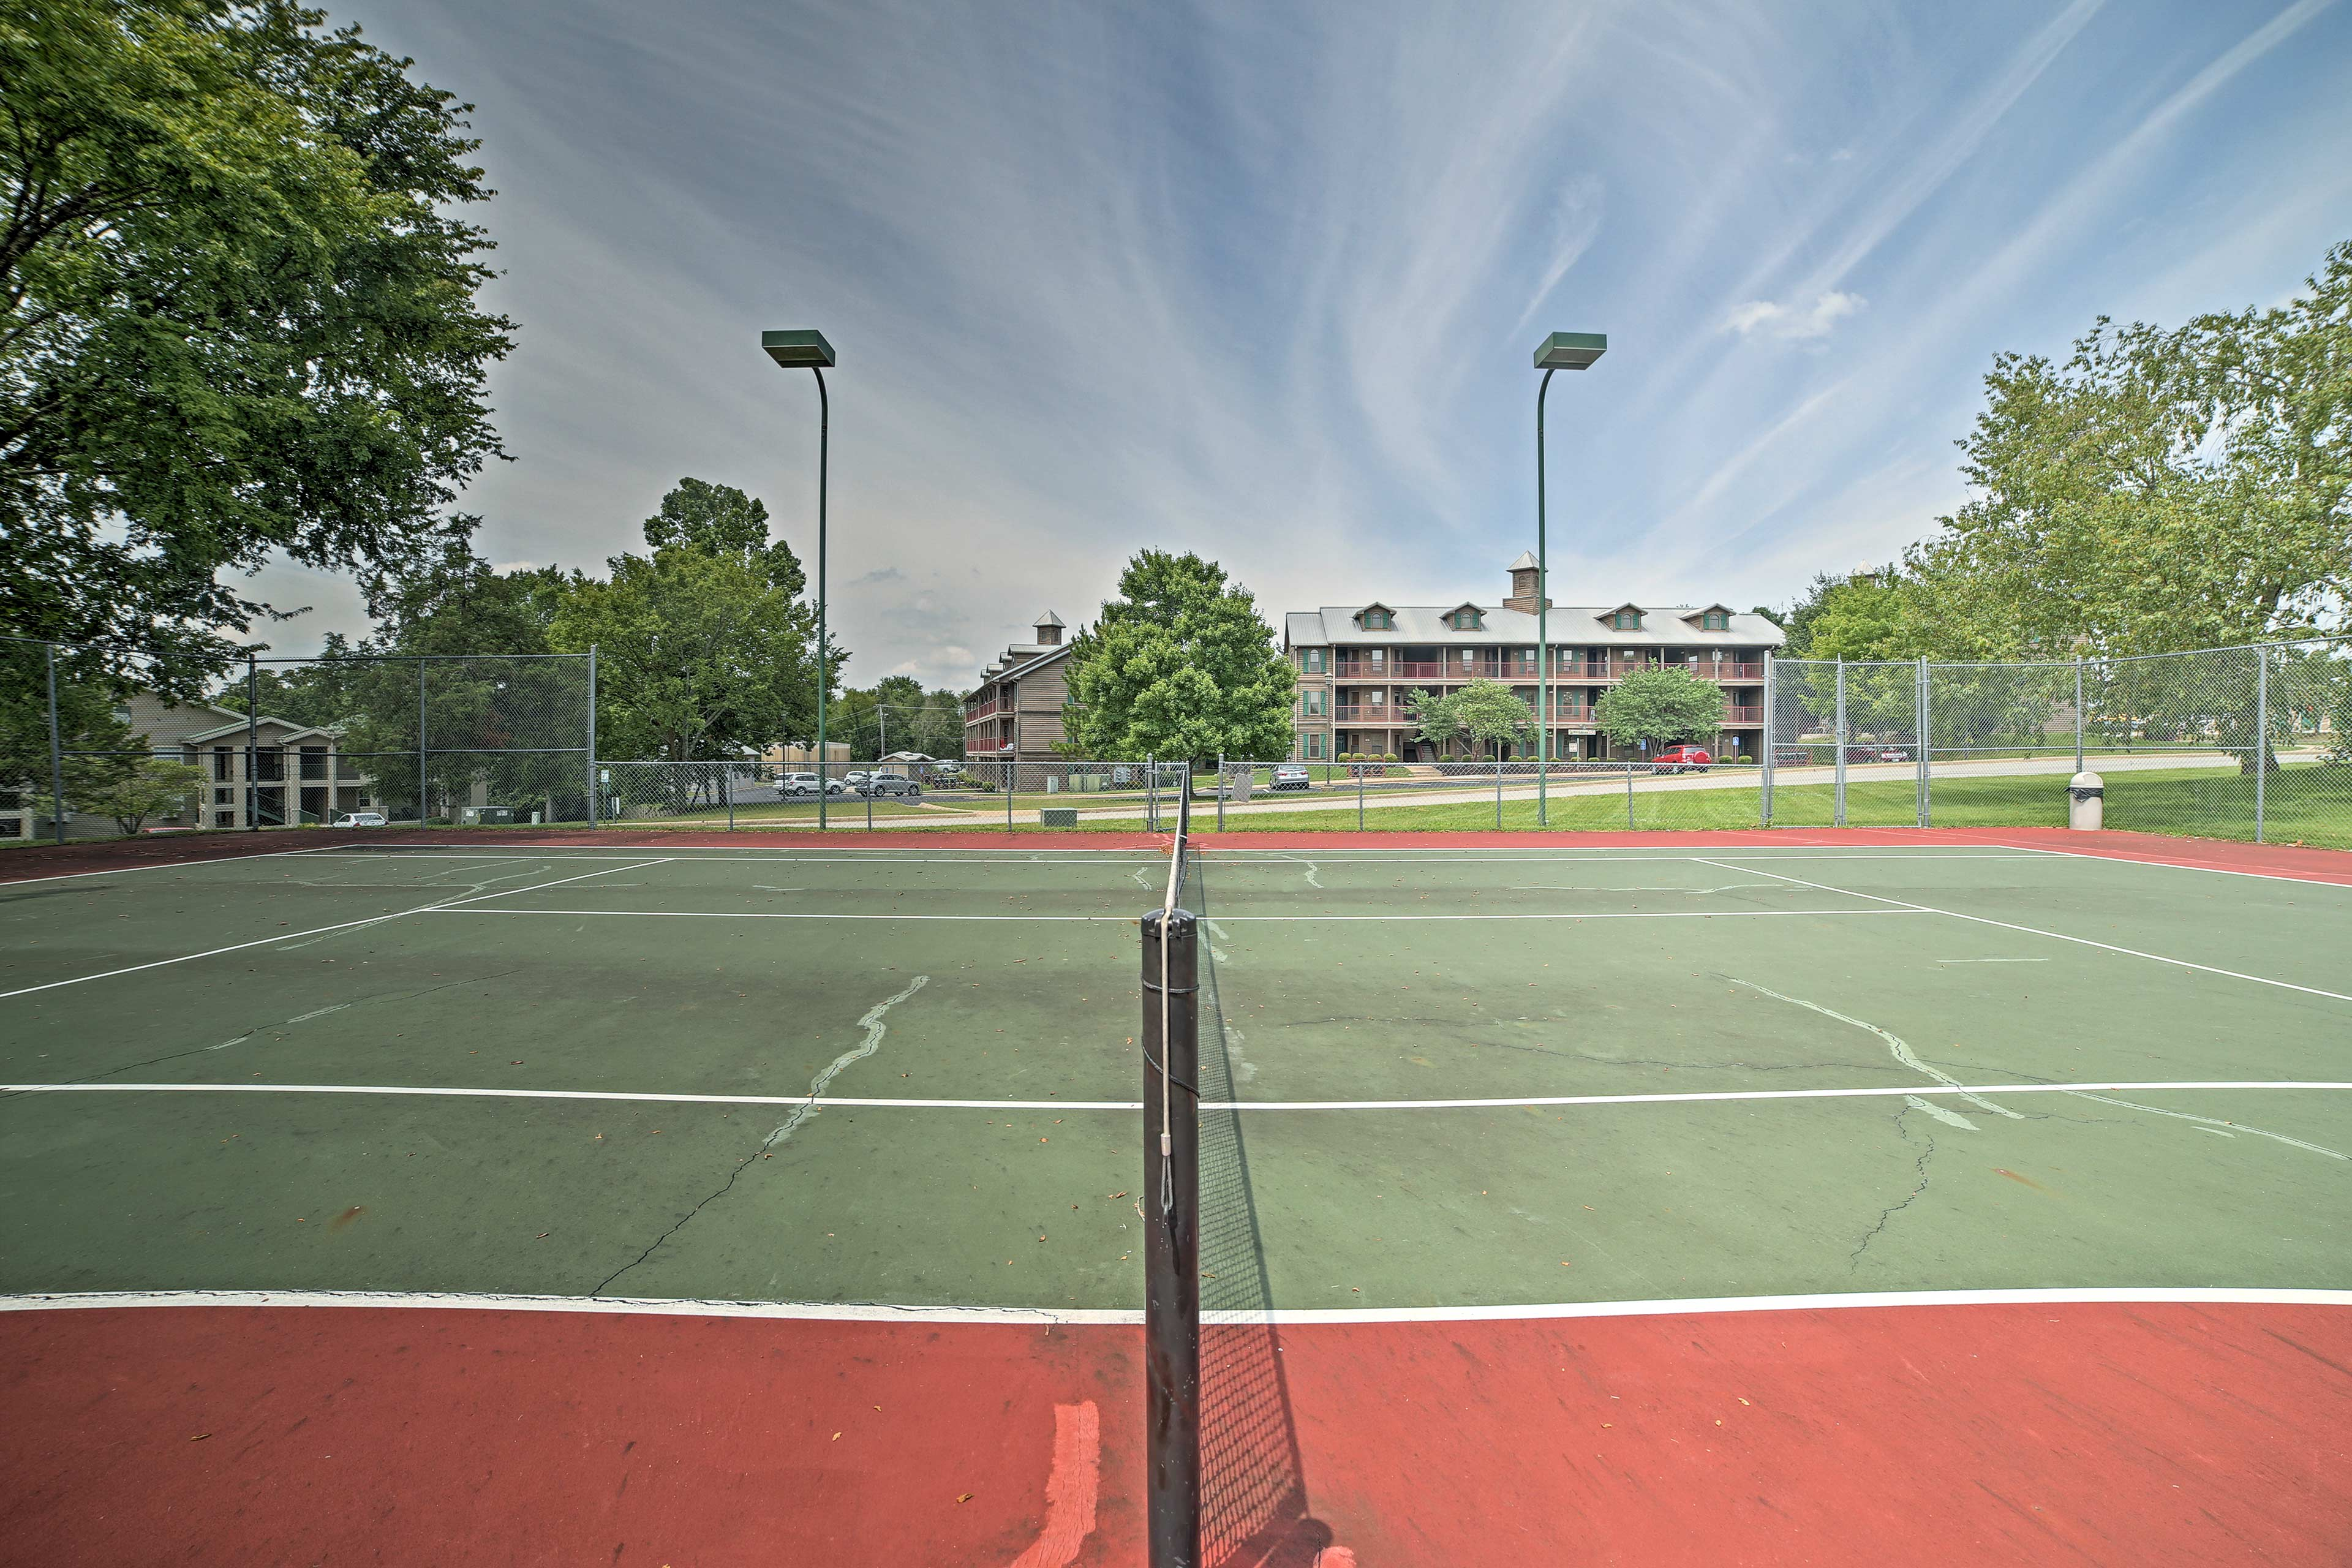 Show off your skills on the tennis courts.